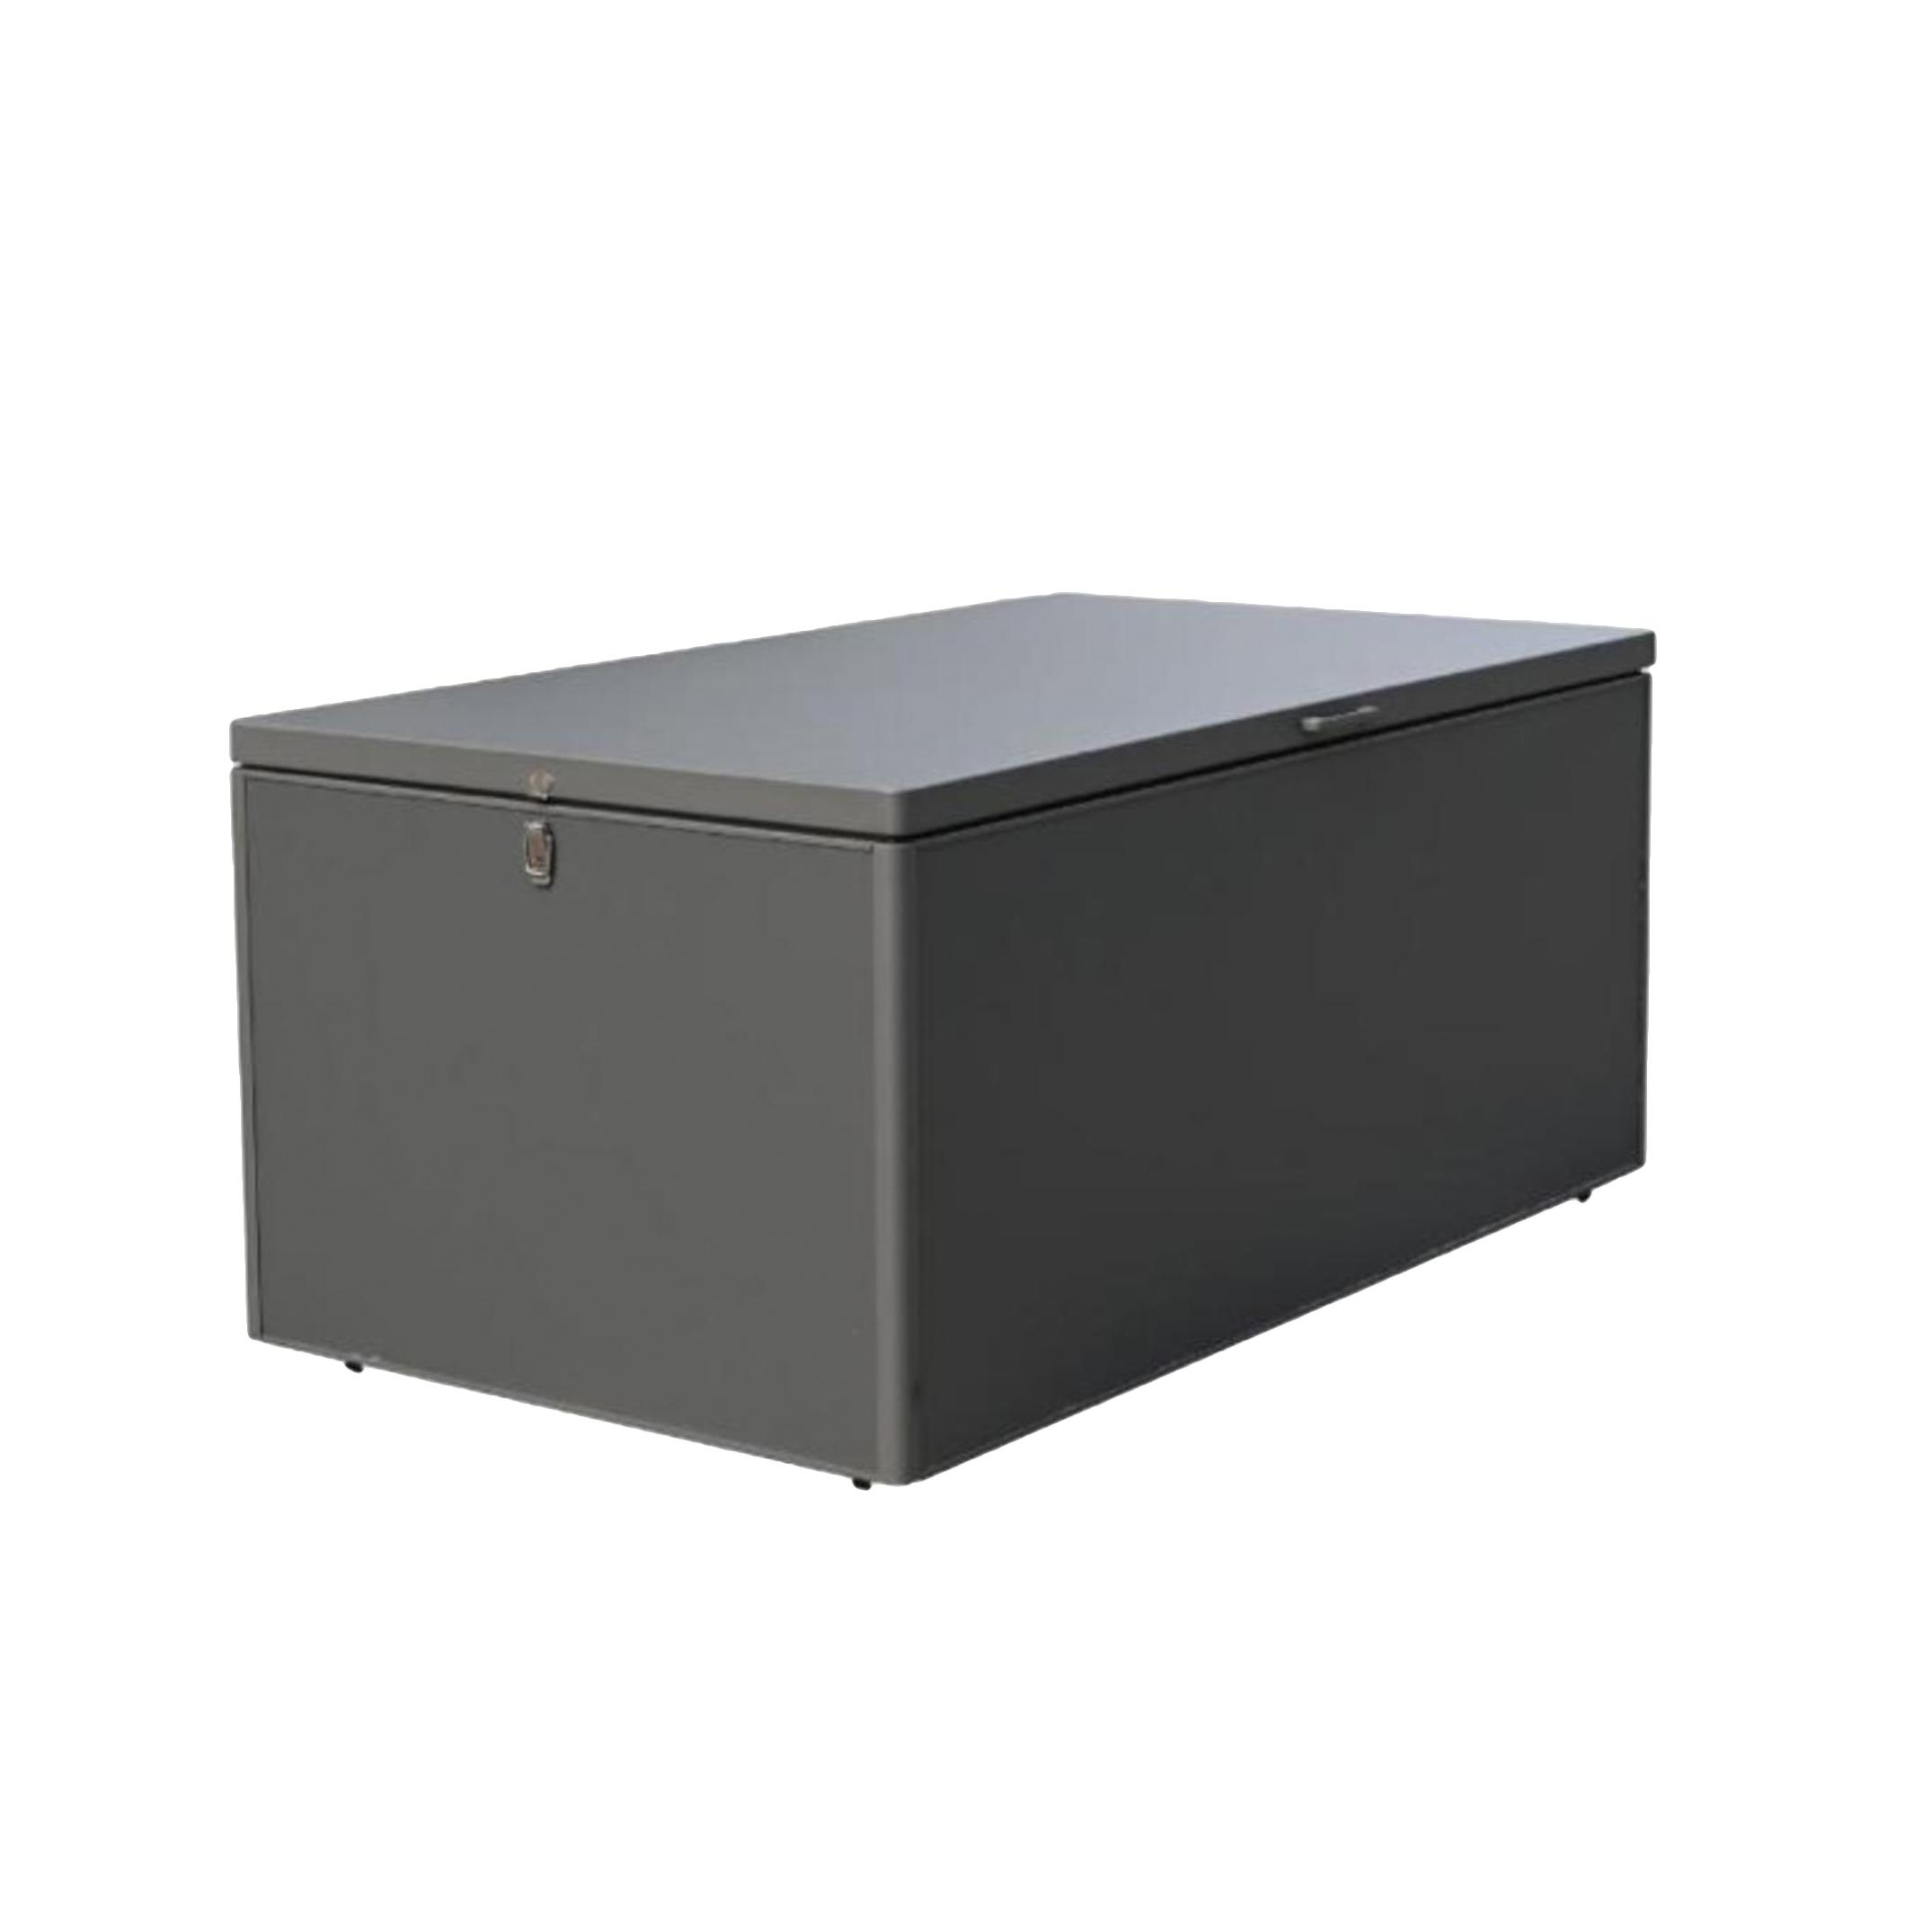 aluminium metal garden storage box for cushions closed